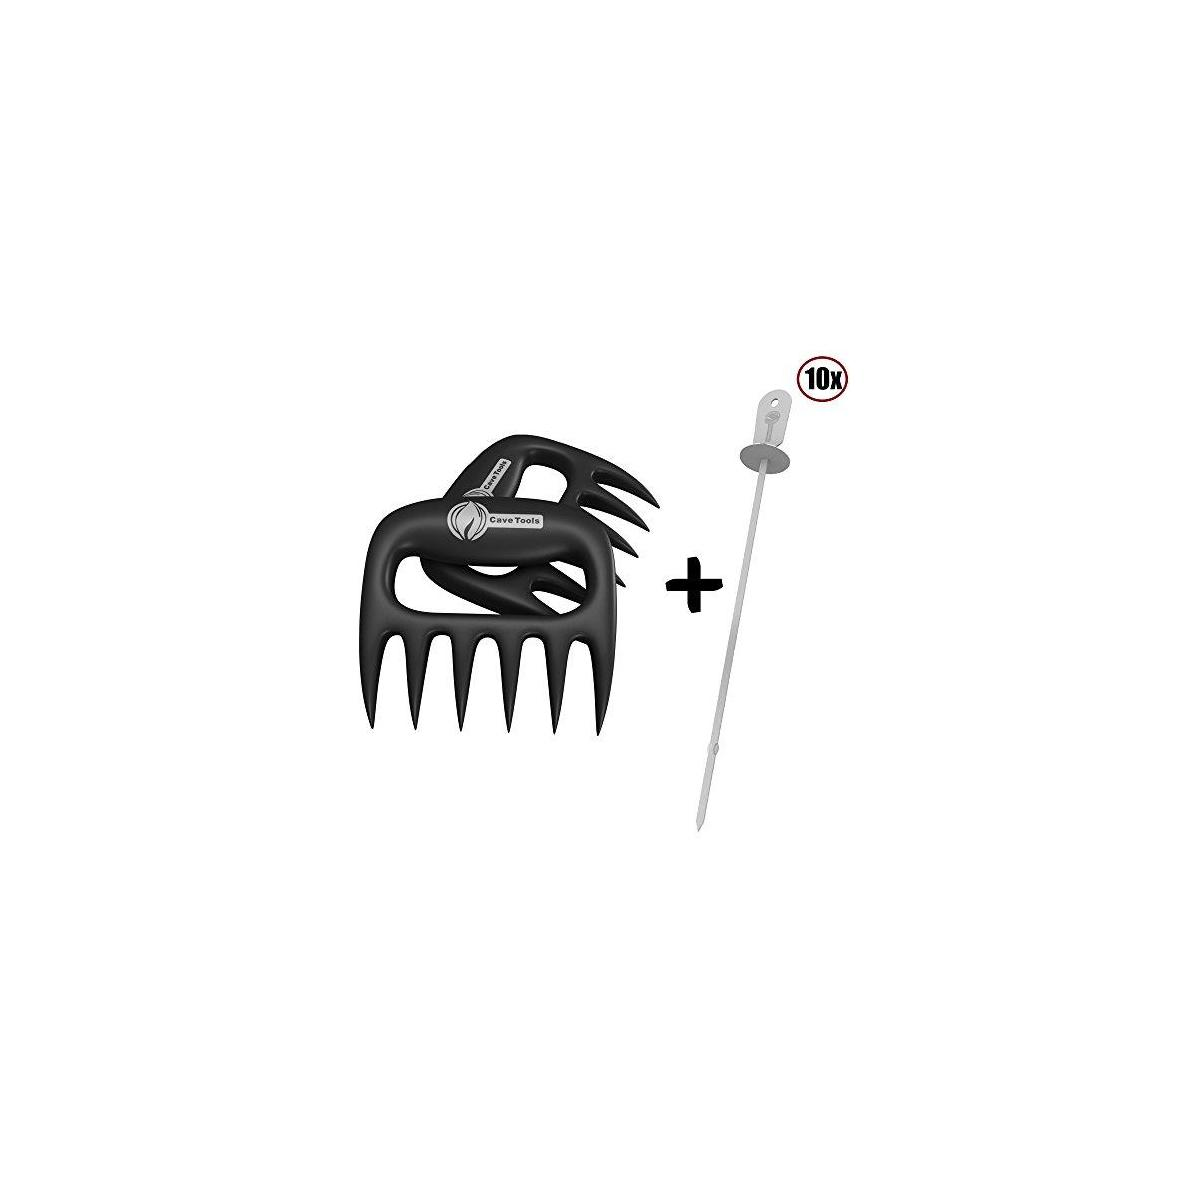 Kabob Skewers + Pulled Pork Shredder Claws - Strongest BBQ Meat Forks - Shredding Handling & Carving Food - Claw Handler Set for Pulling Brisket from Grill Smoker or Slow Cooker - Barbecue Paws